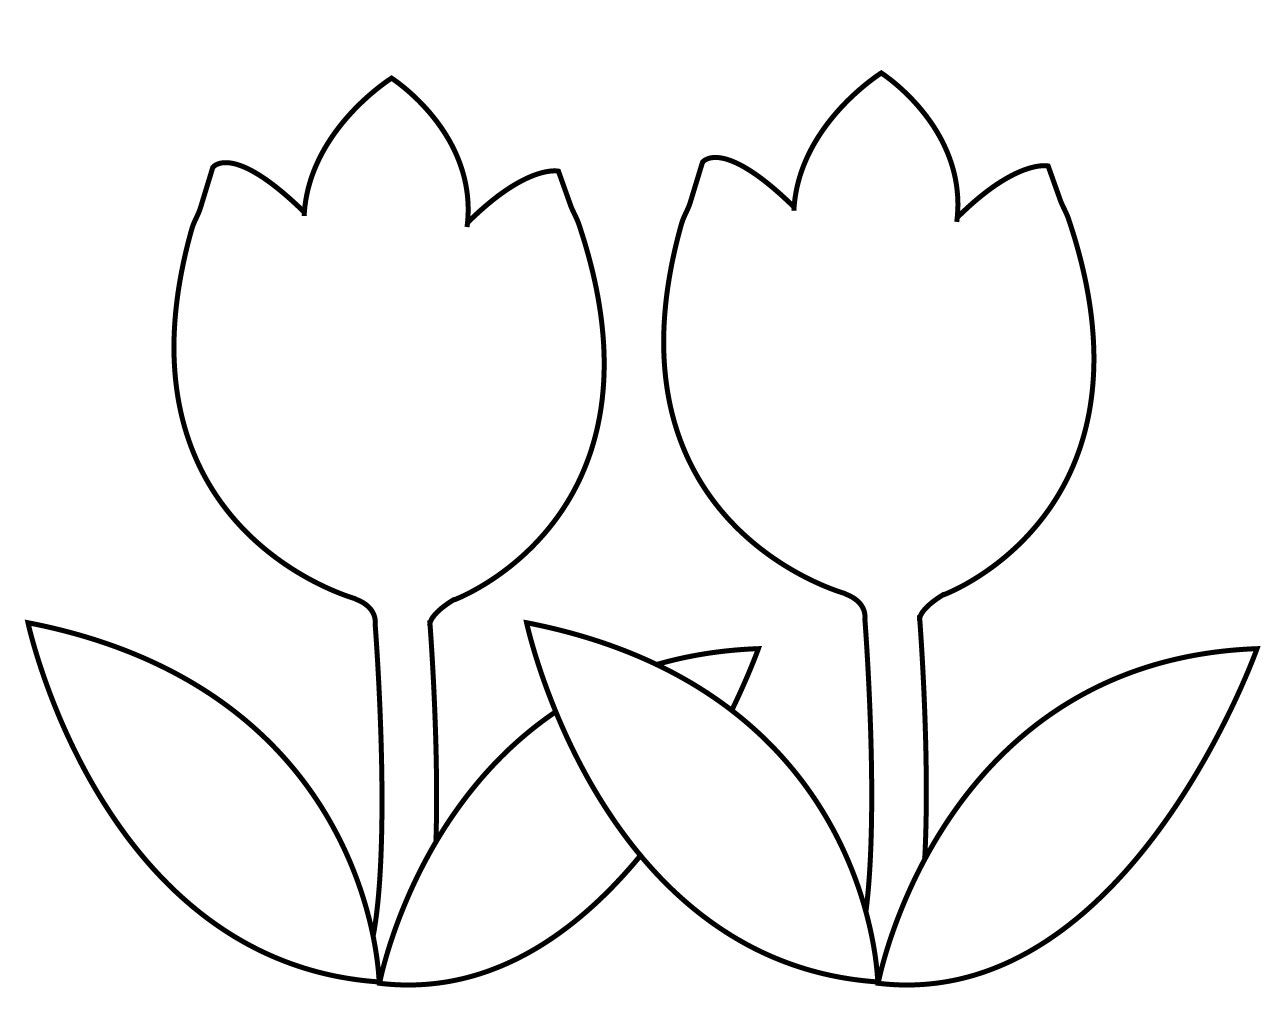 Tulip Simple Flower Coloring Pages Flower Coloring Pages Coloring Pages Simple Flowers